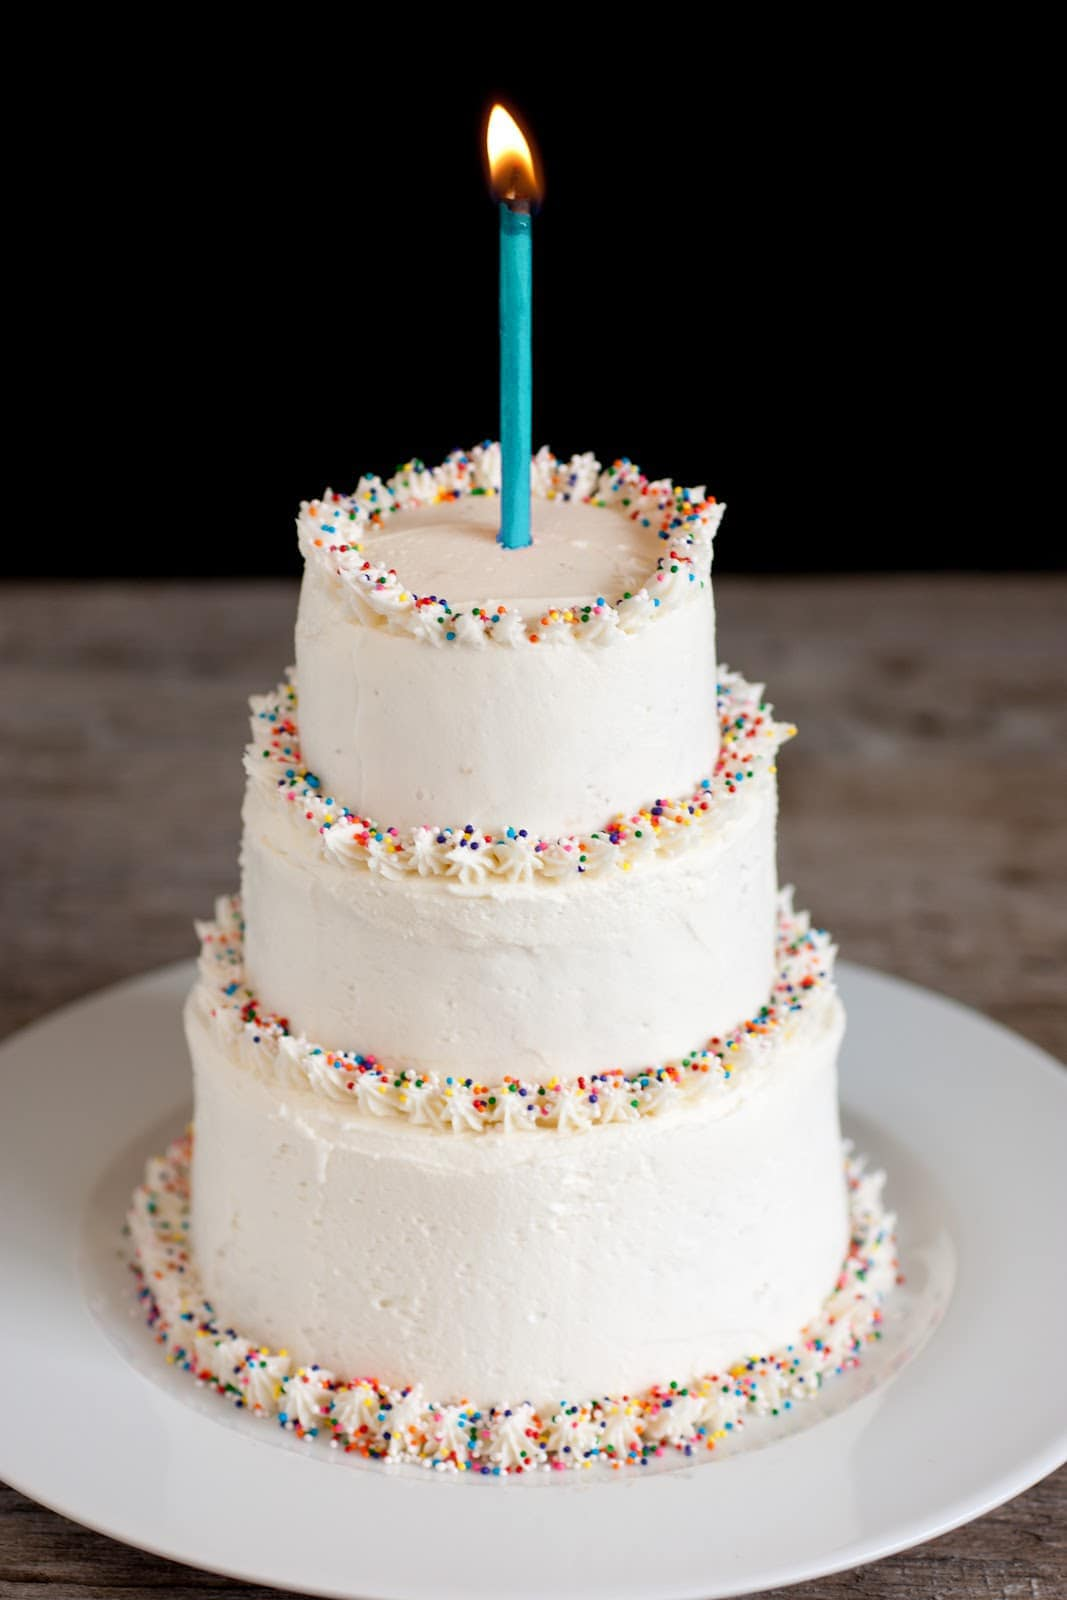 Three tiered cake covered with the best vanilla buttercream frosting. Cake edges are garnished with multi colored sprinkles and there's one lit candle atop the cake.